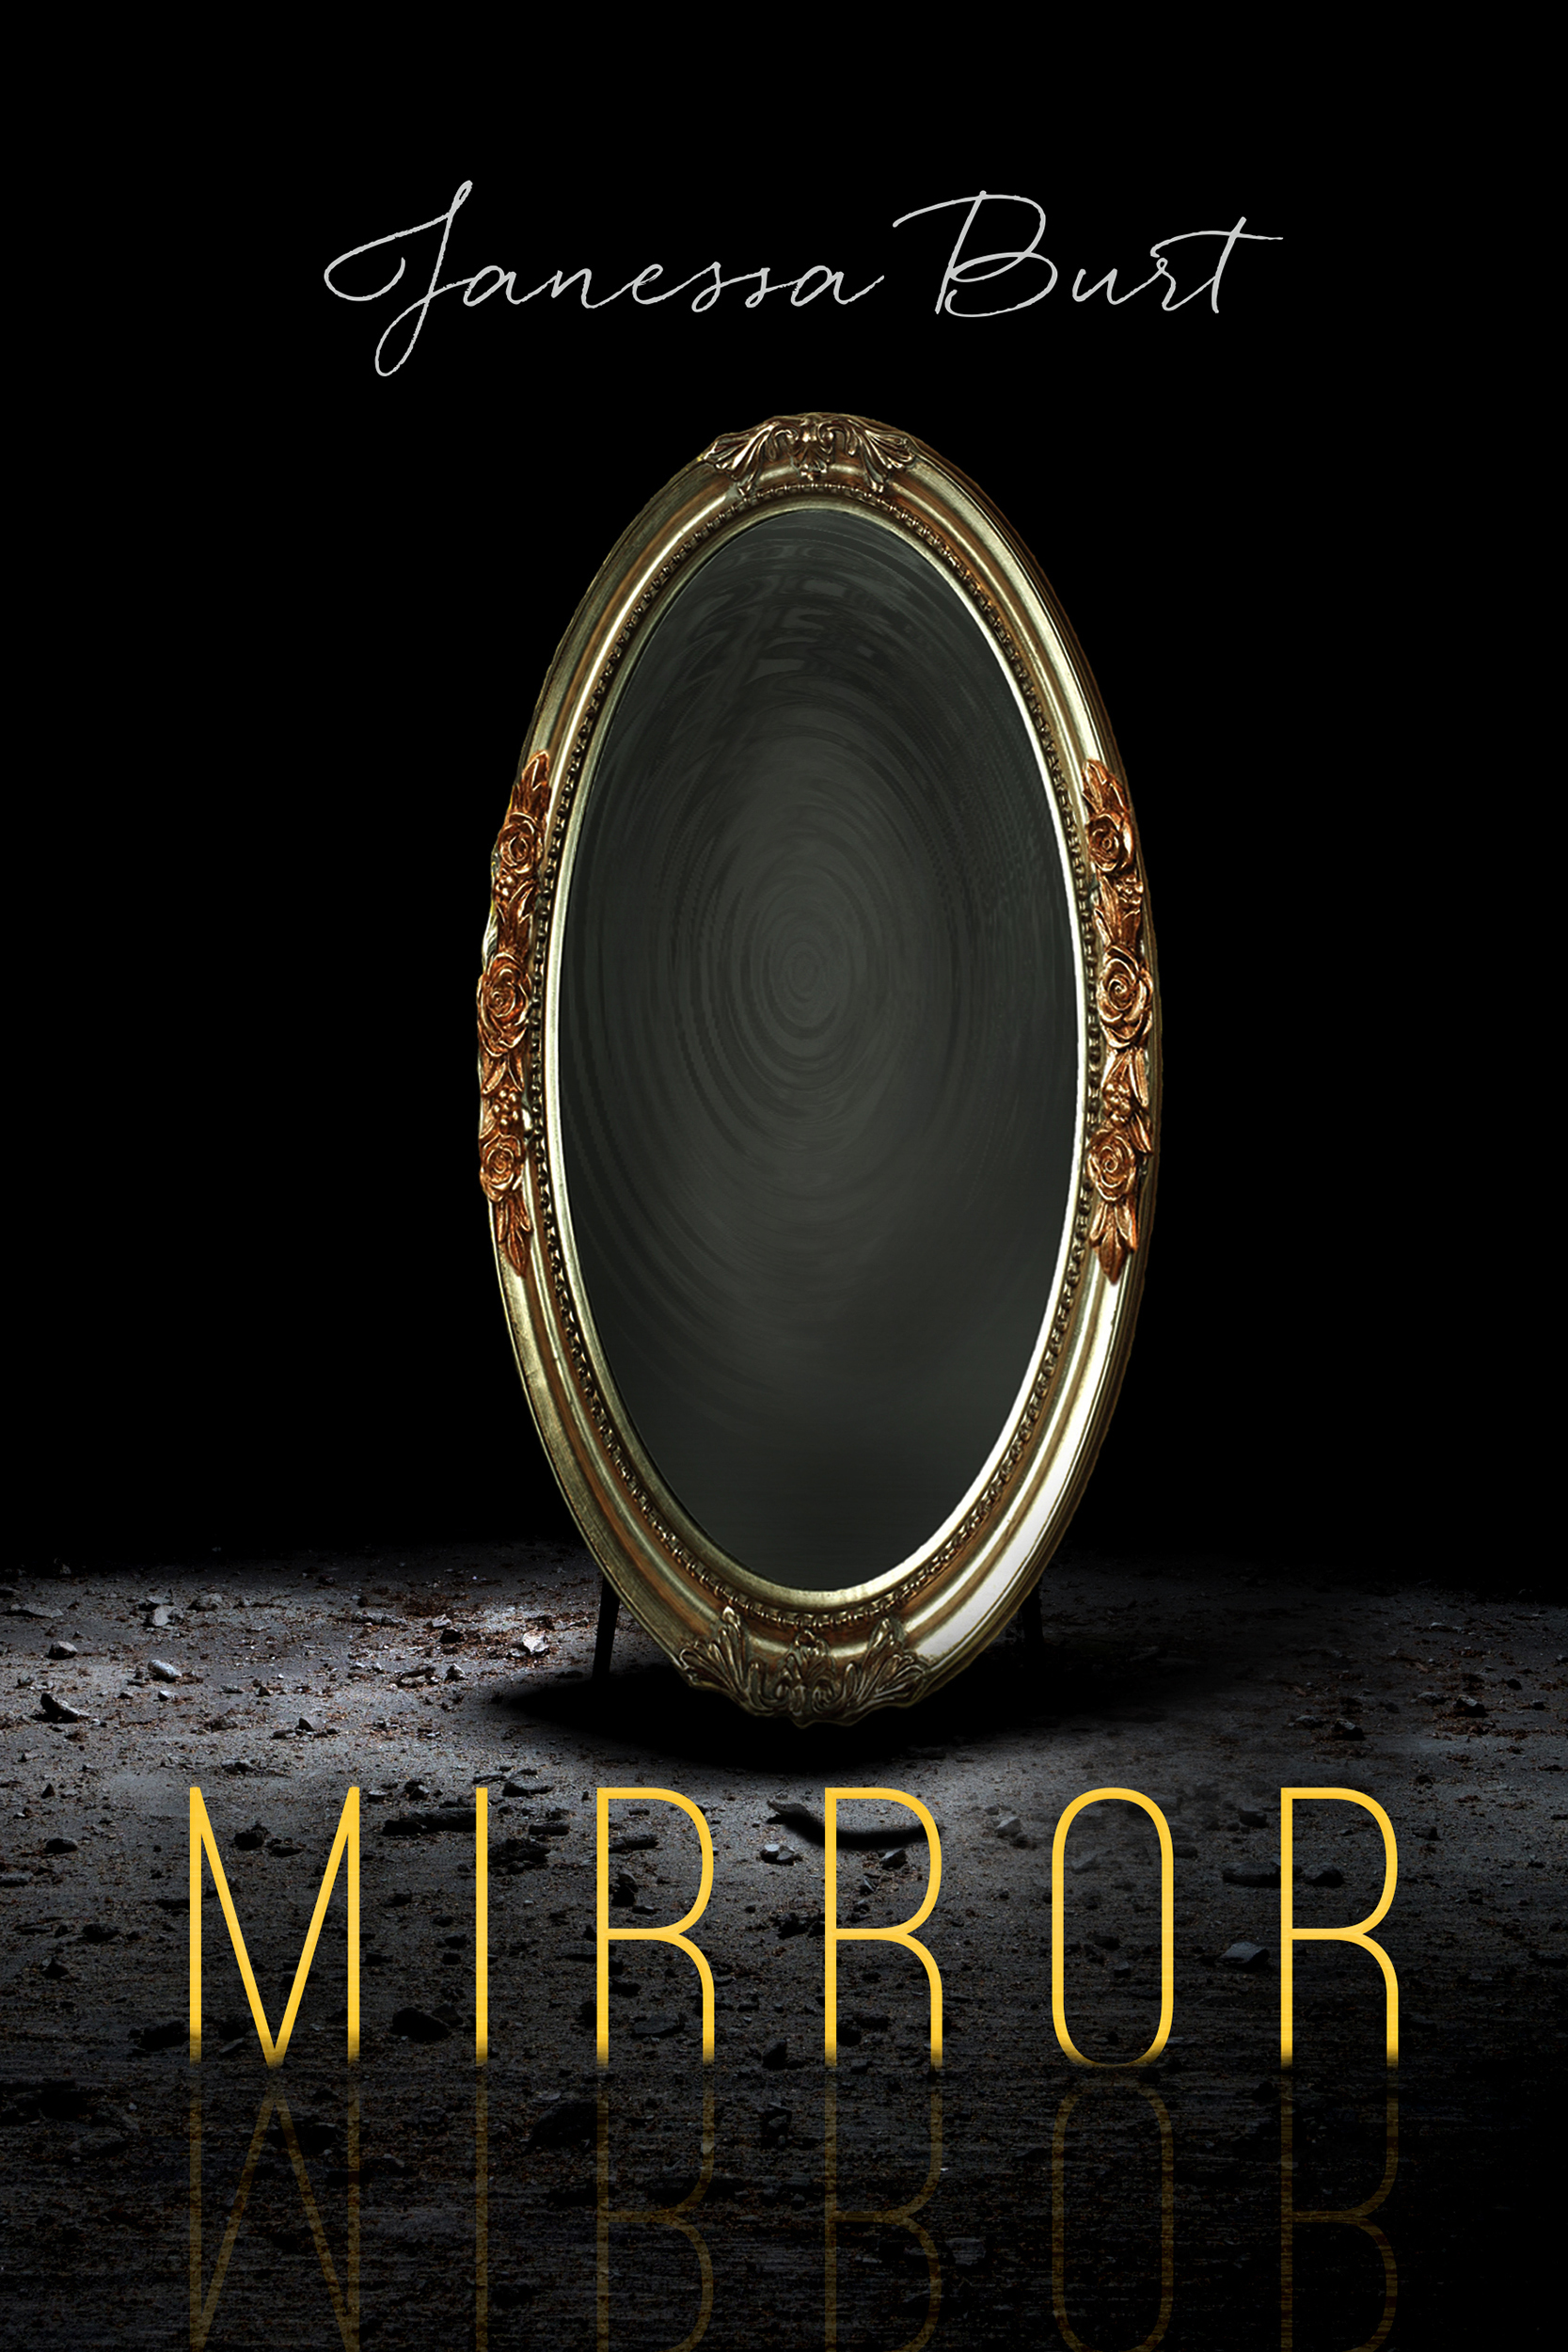 Mirror  by  Janessa Burt